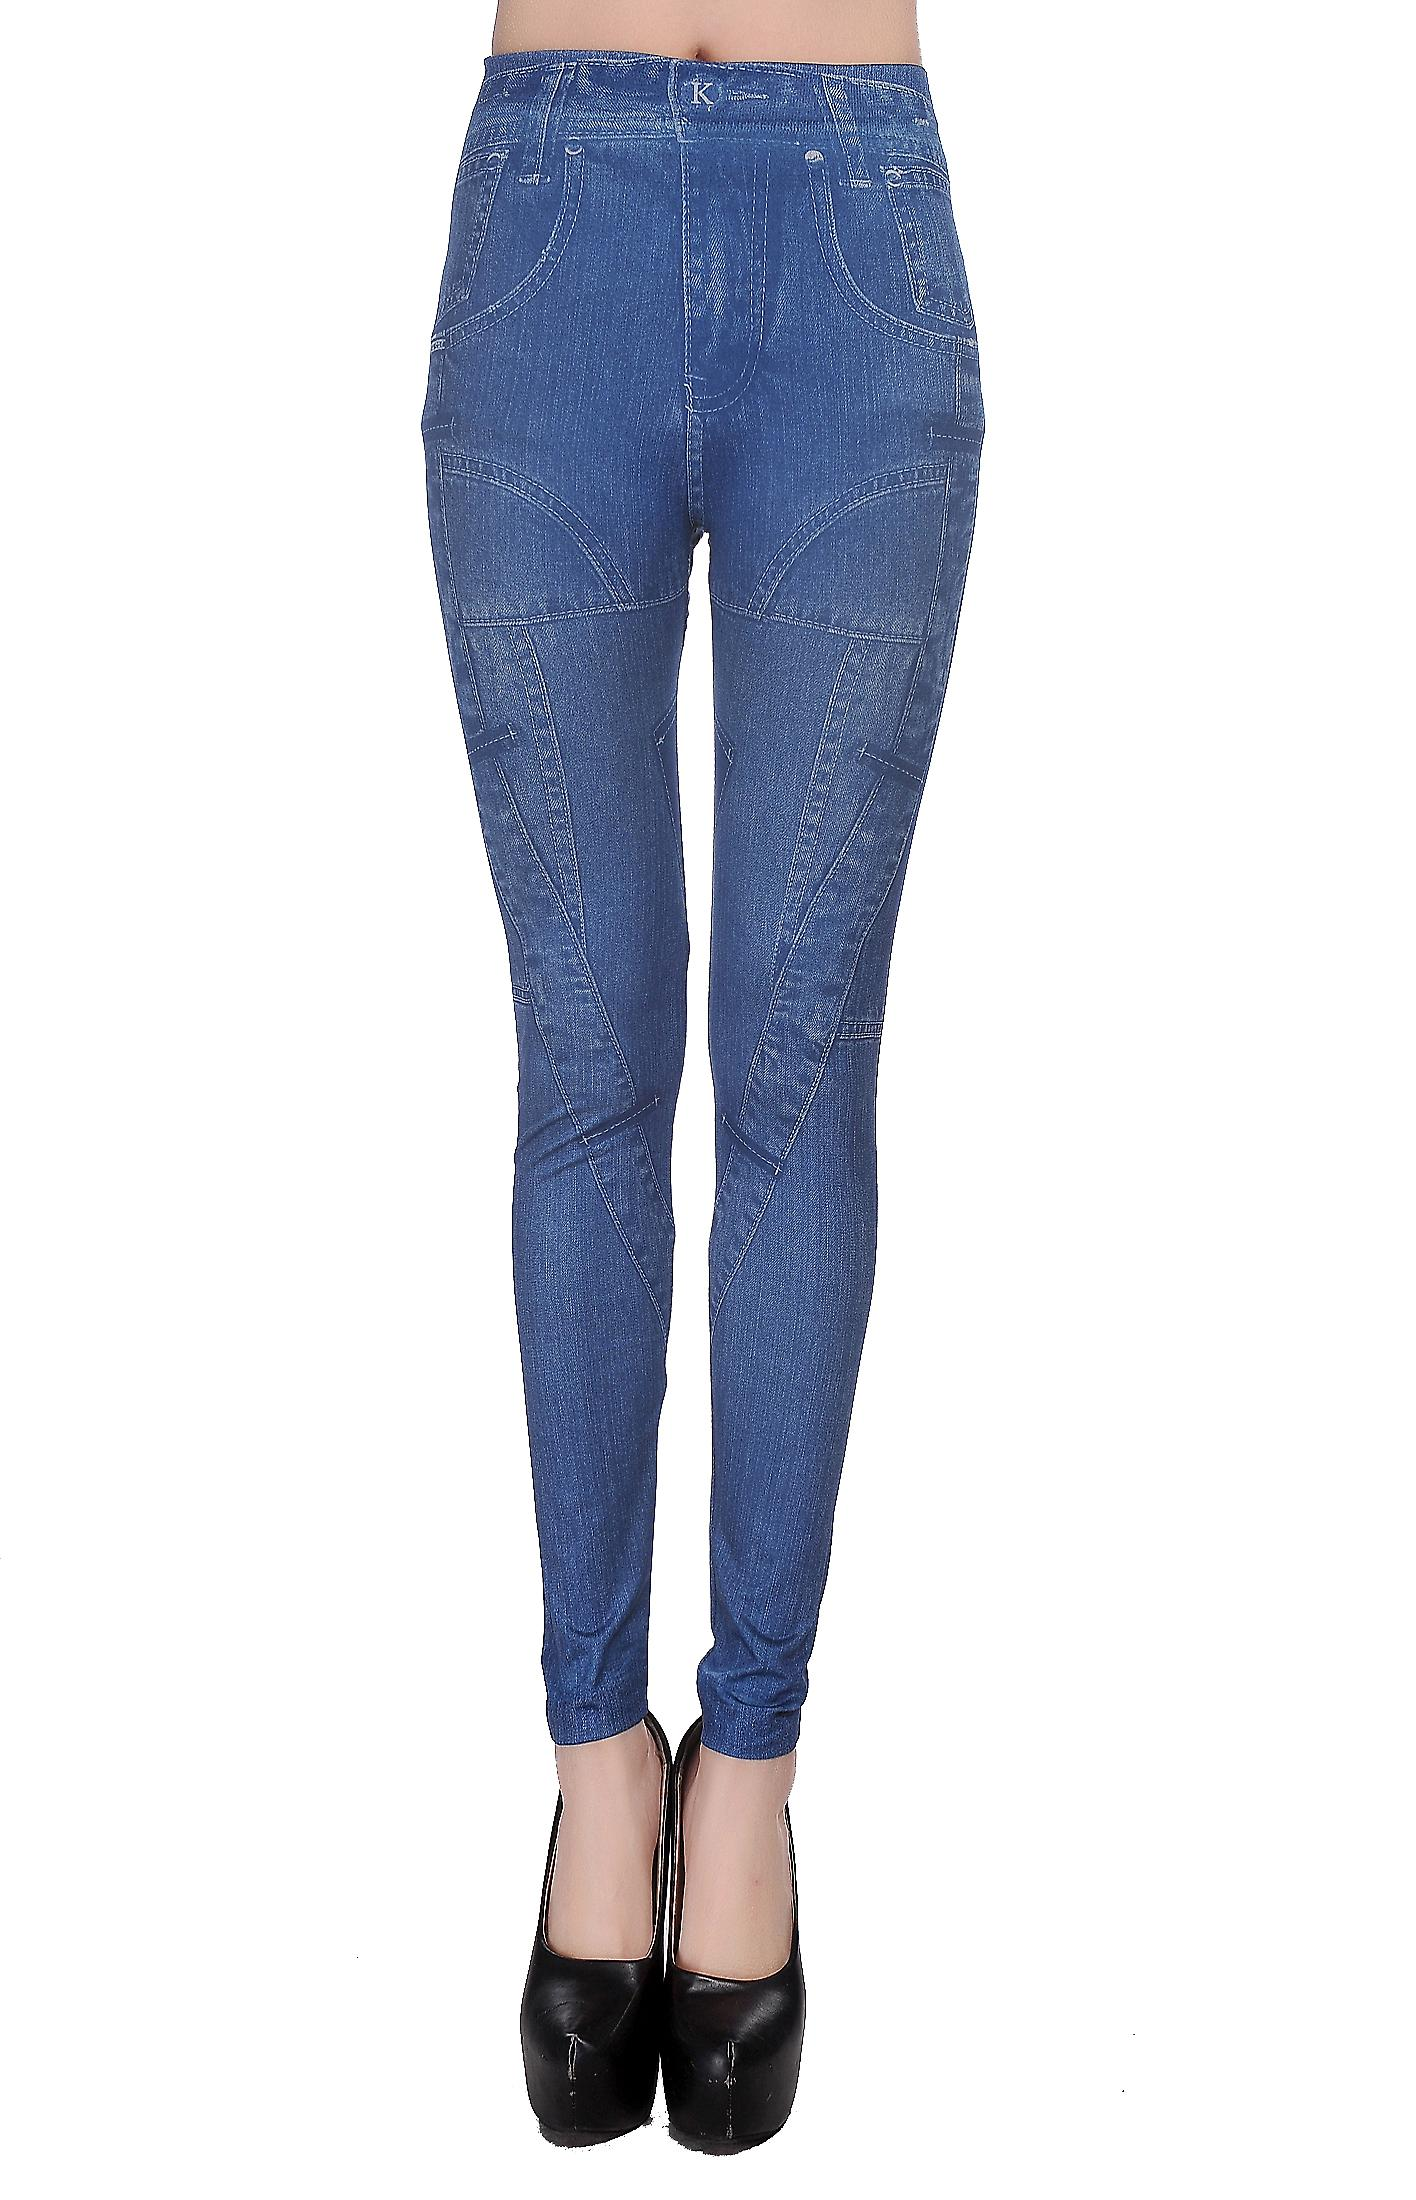 Waooh - mode - Legging jean